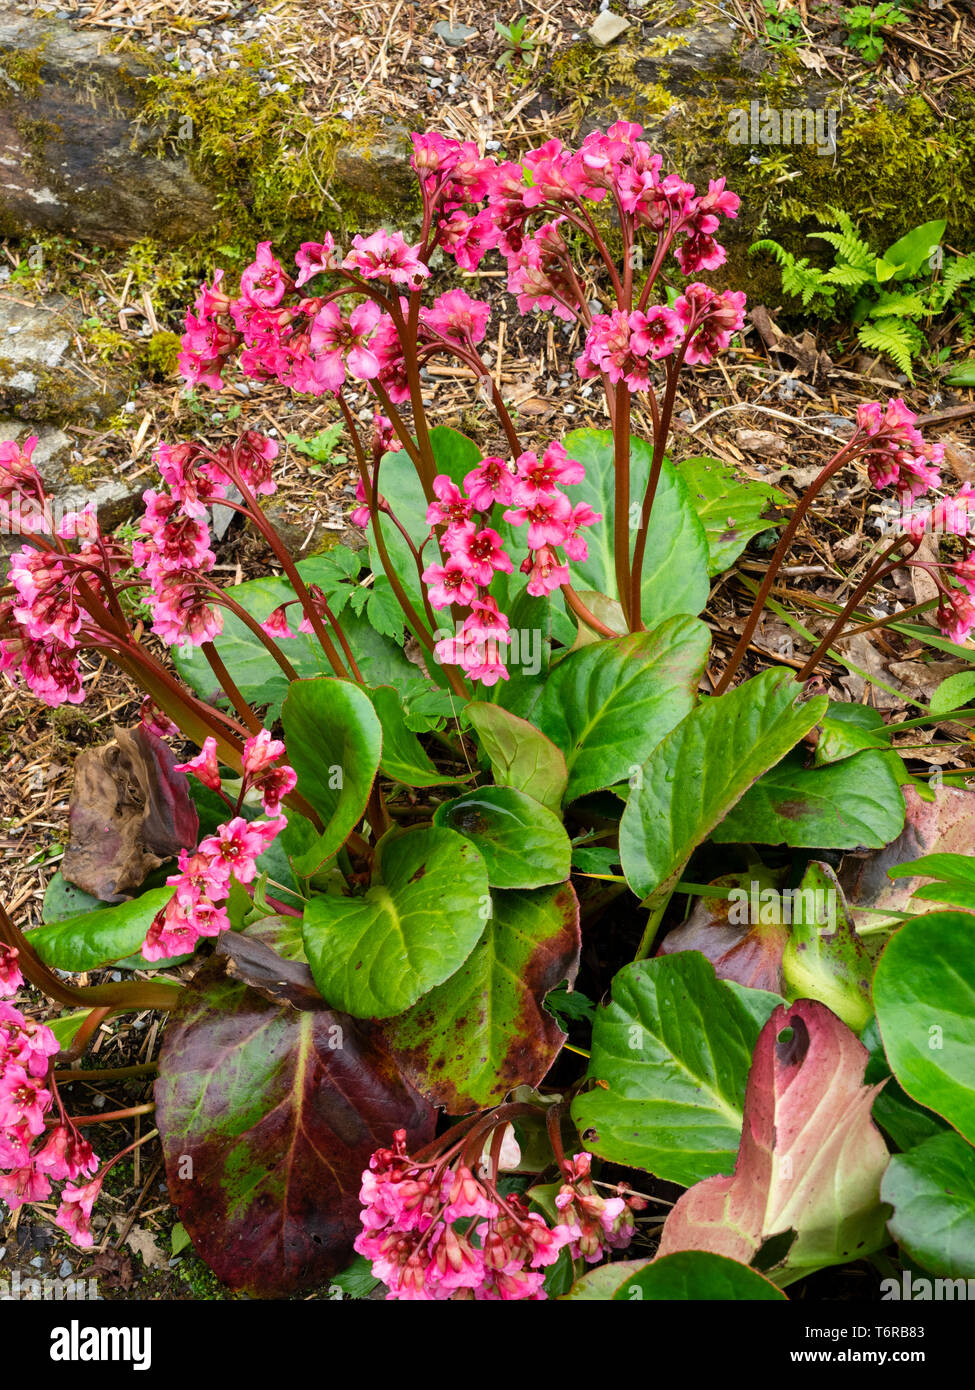 Leathery evergreen foliage and red-pink spring flowers of the hardy perennial, Bergenia 'Bressingham Salmon' Stock Photo